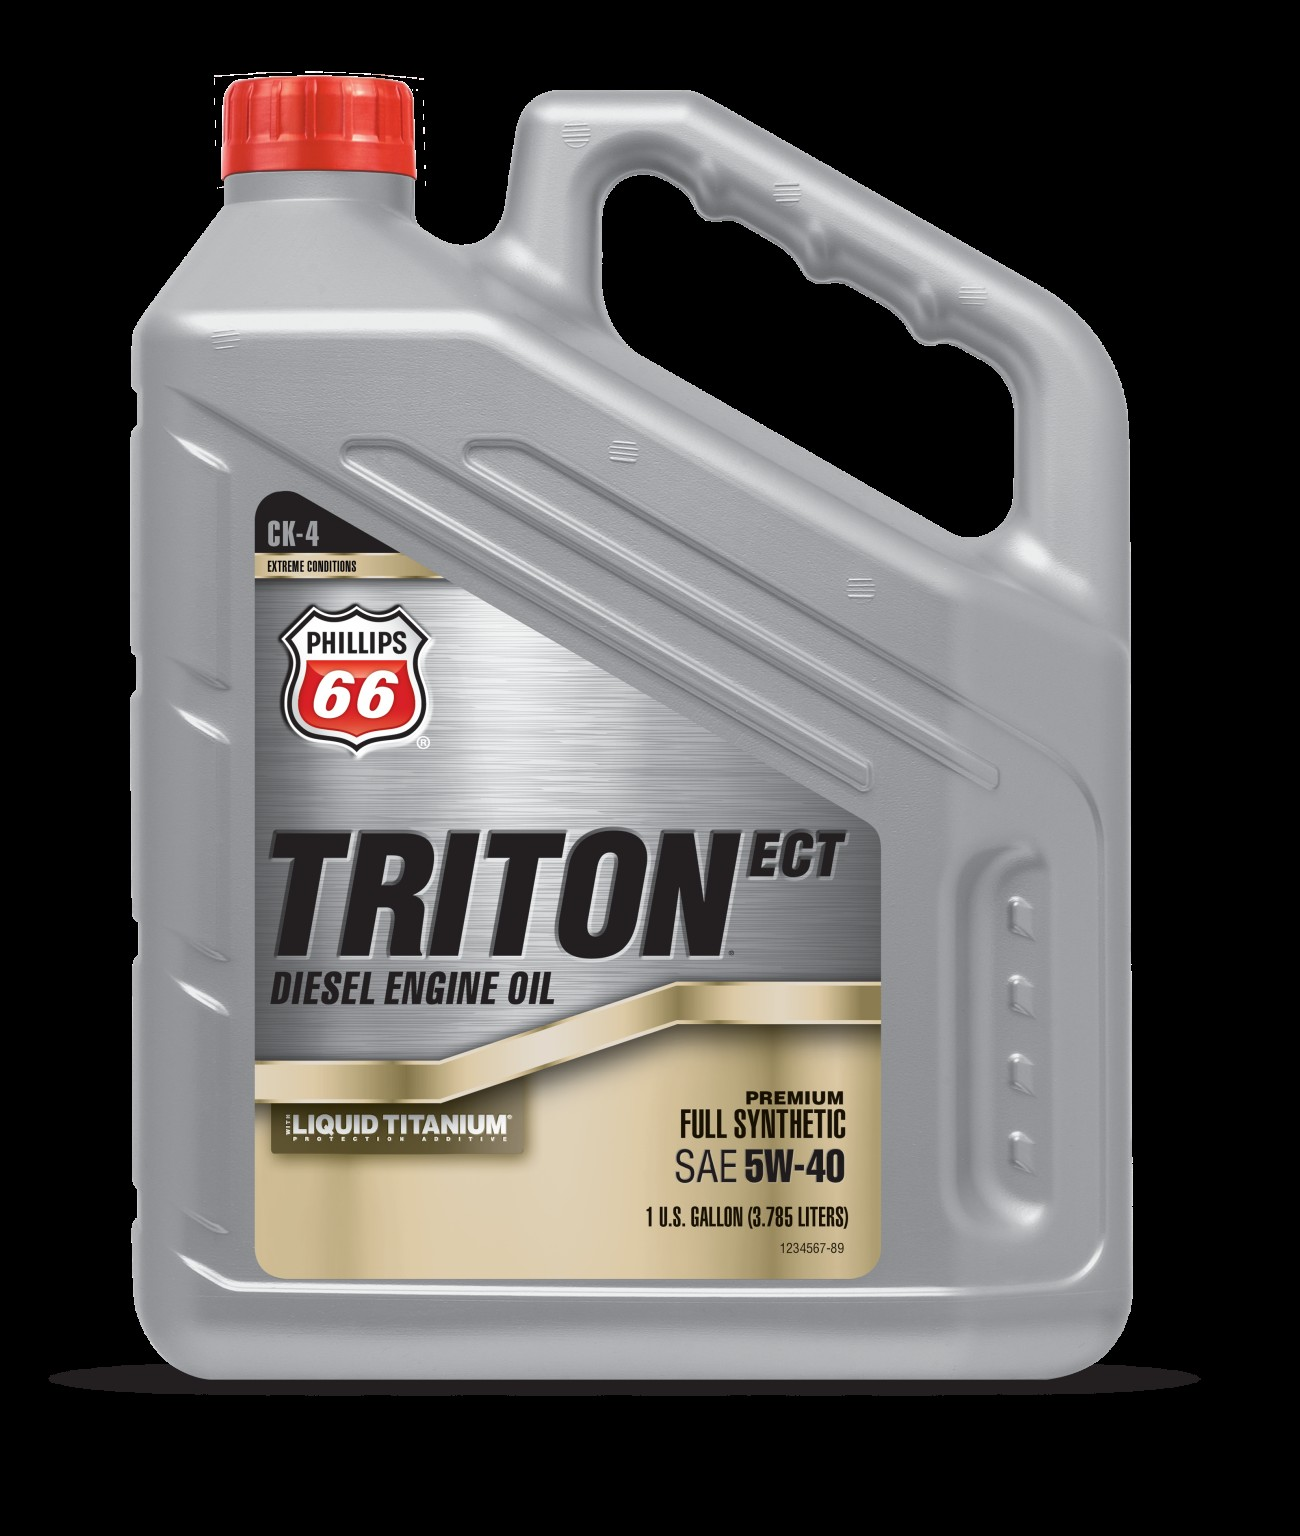 Phillips 66 Triton Synthetic 5w-40